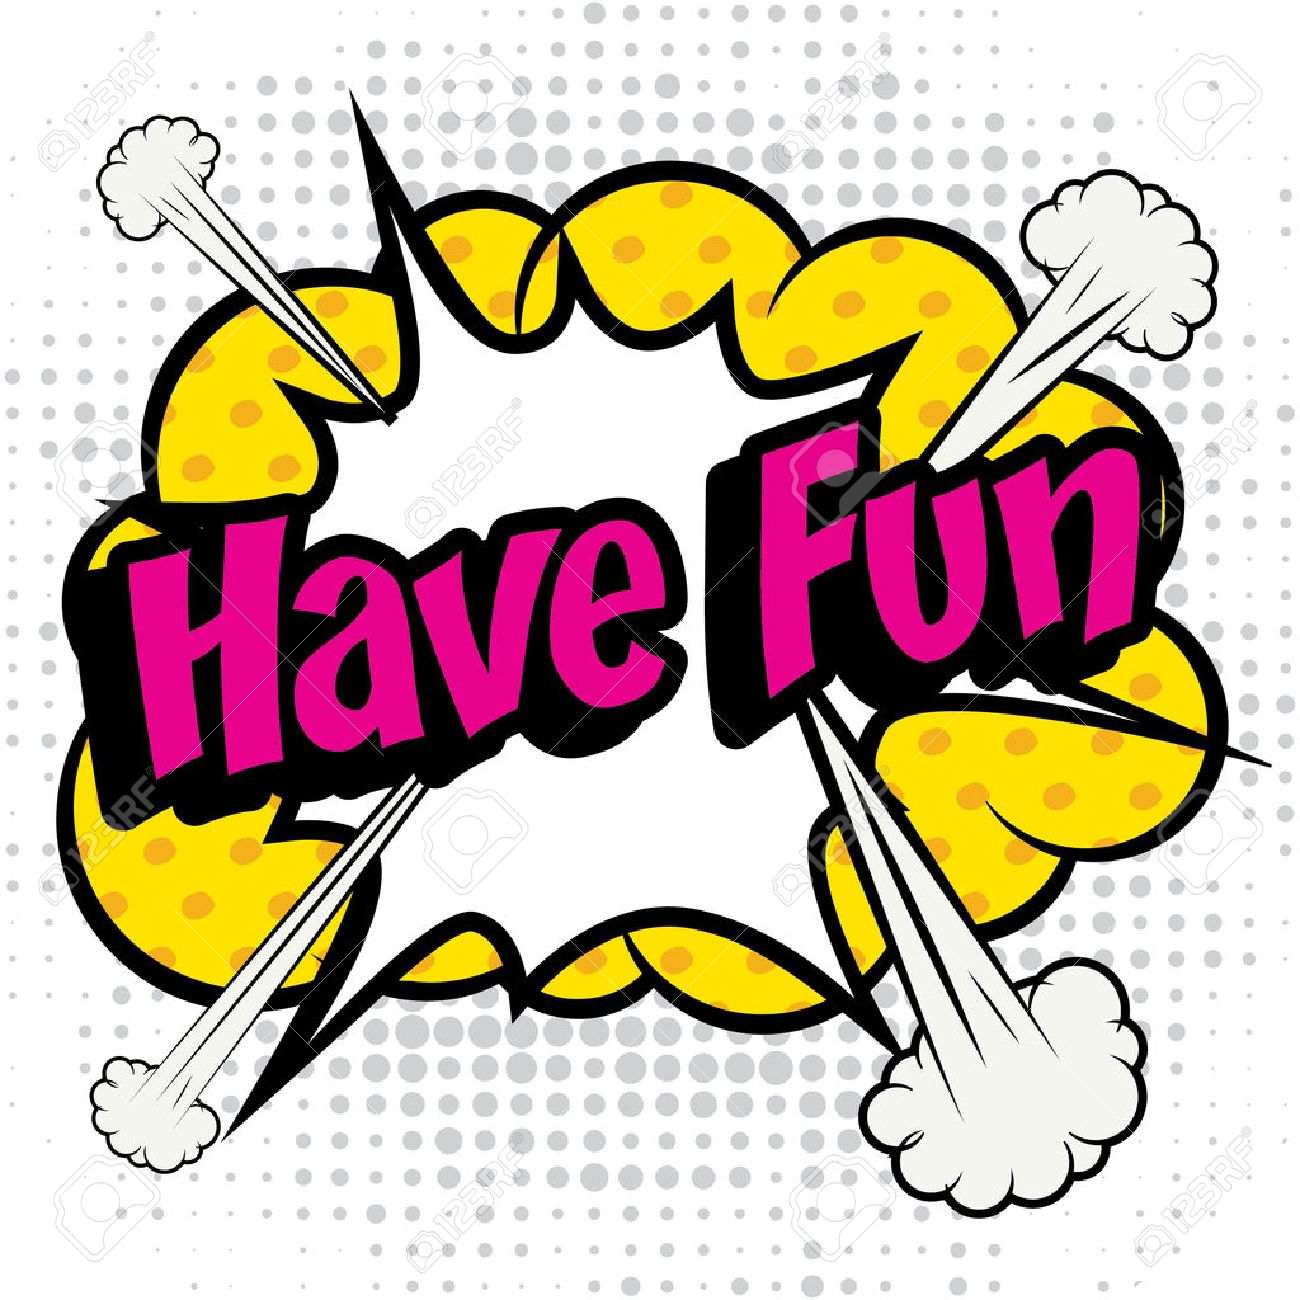 Image result for have fun